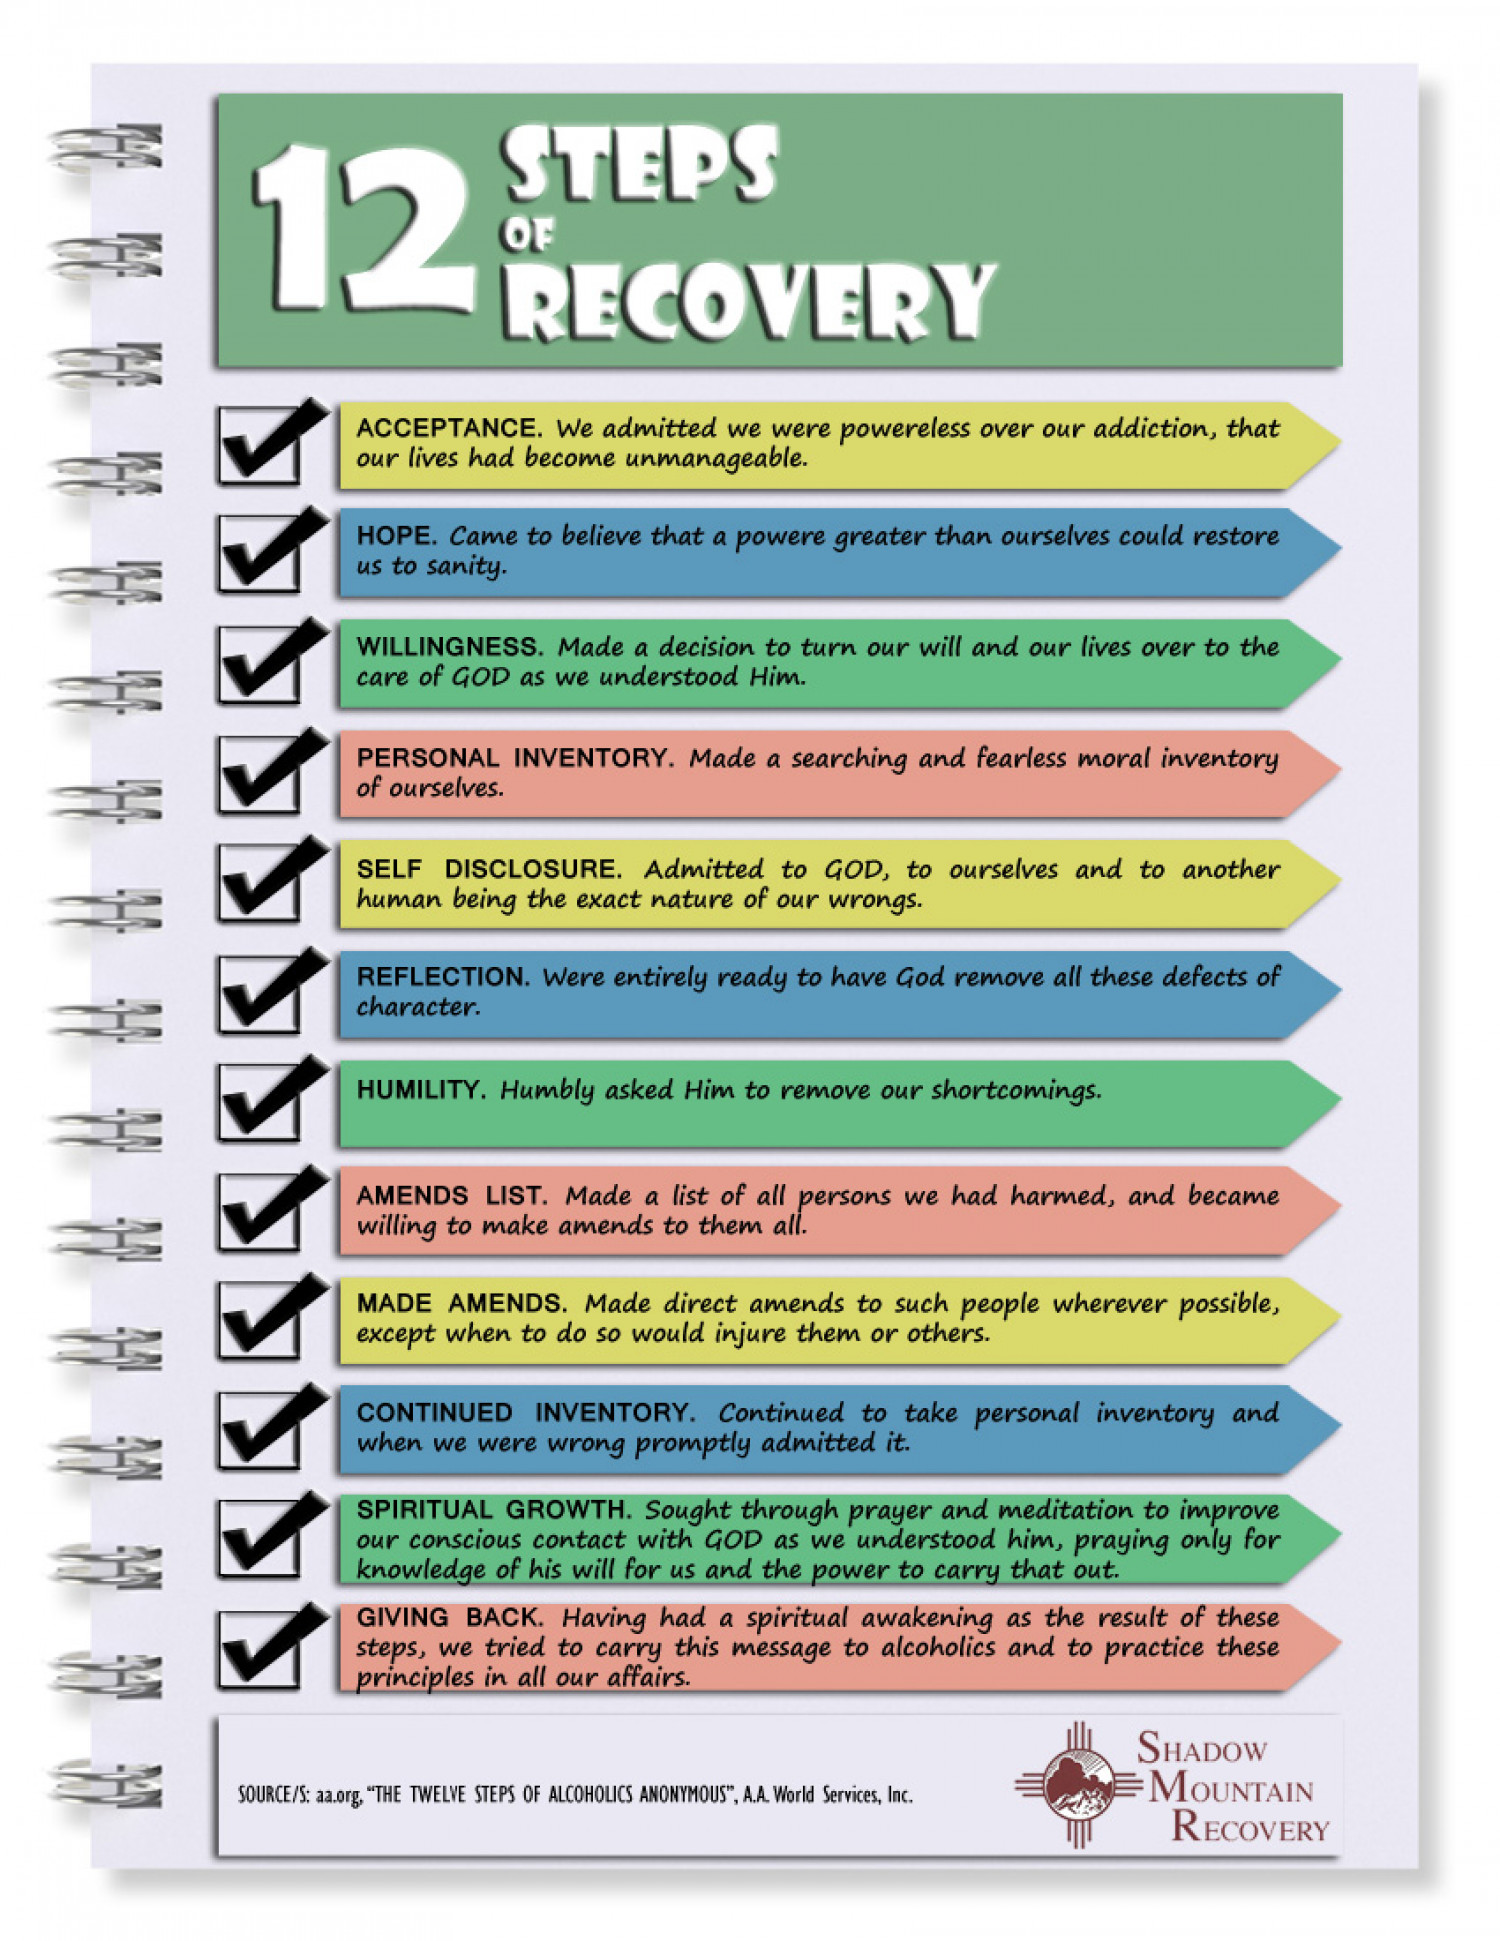 12 Steps of Recovery | Visual.ly